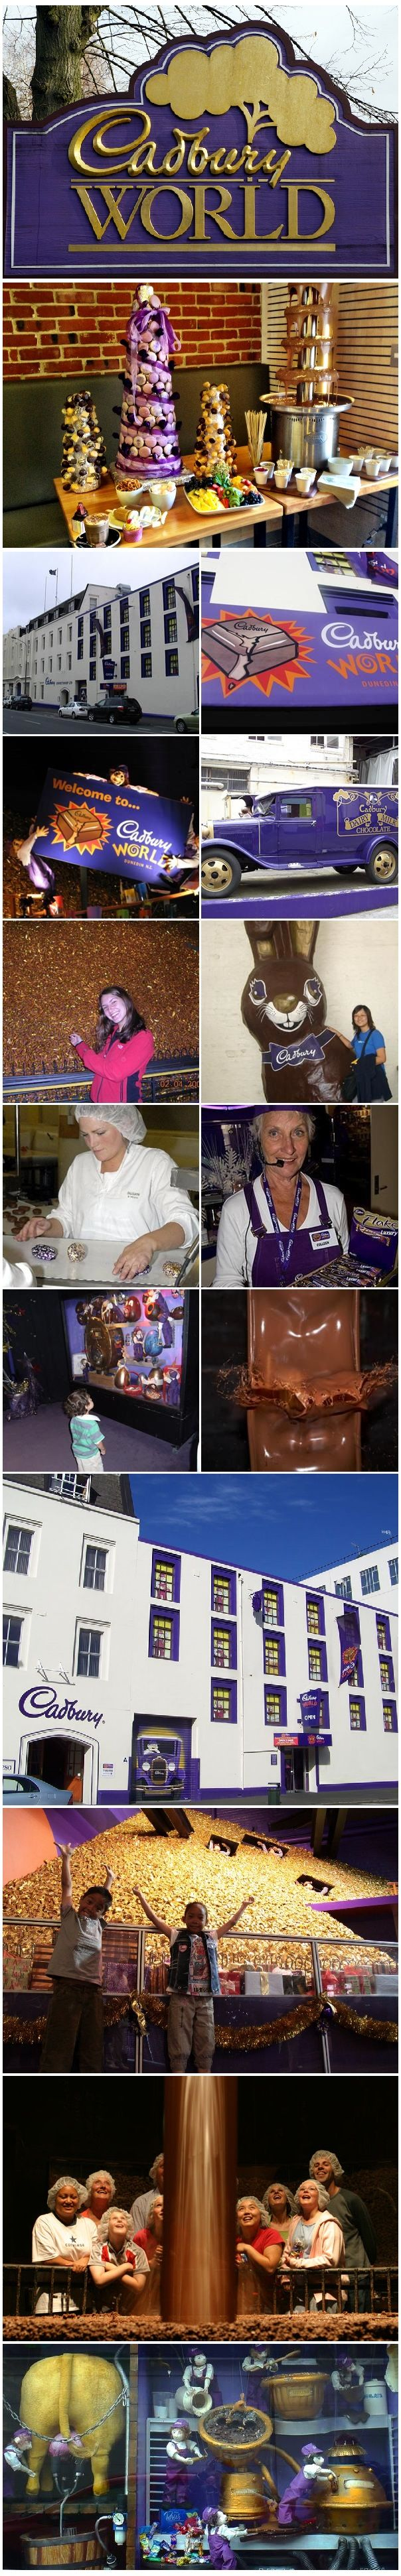 Chocolates Factories - Cadbury World, Dunedin, New Zealand